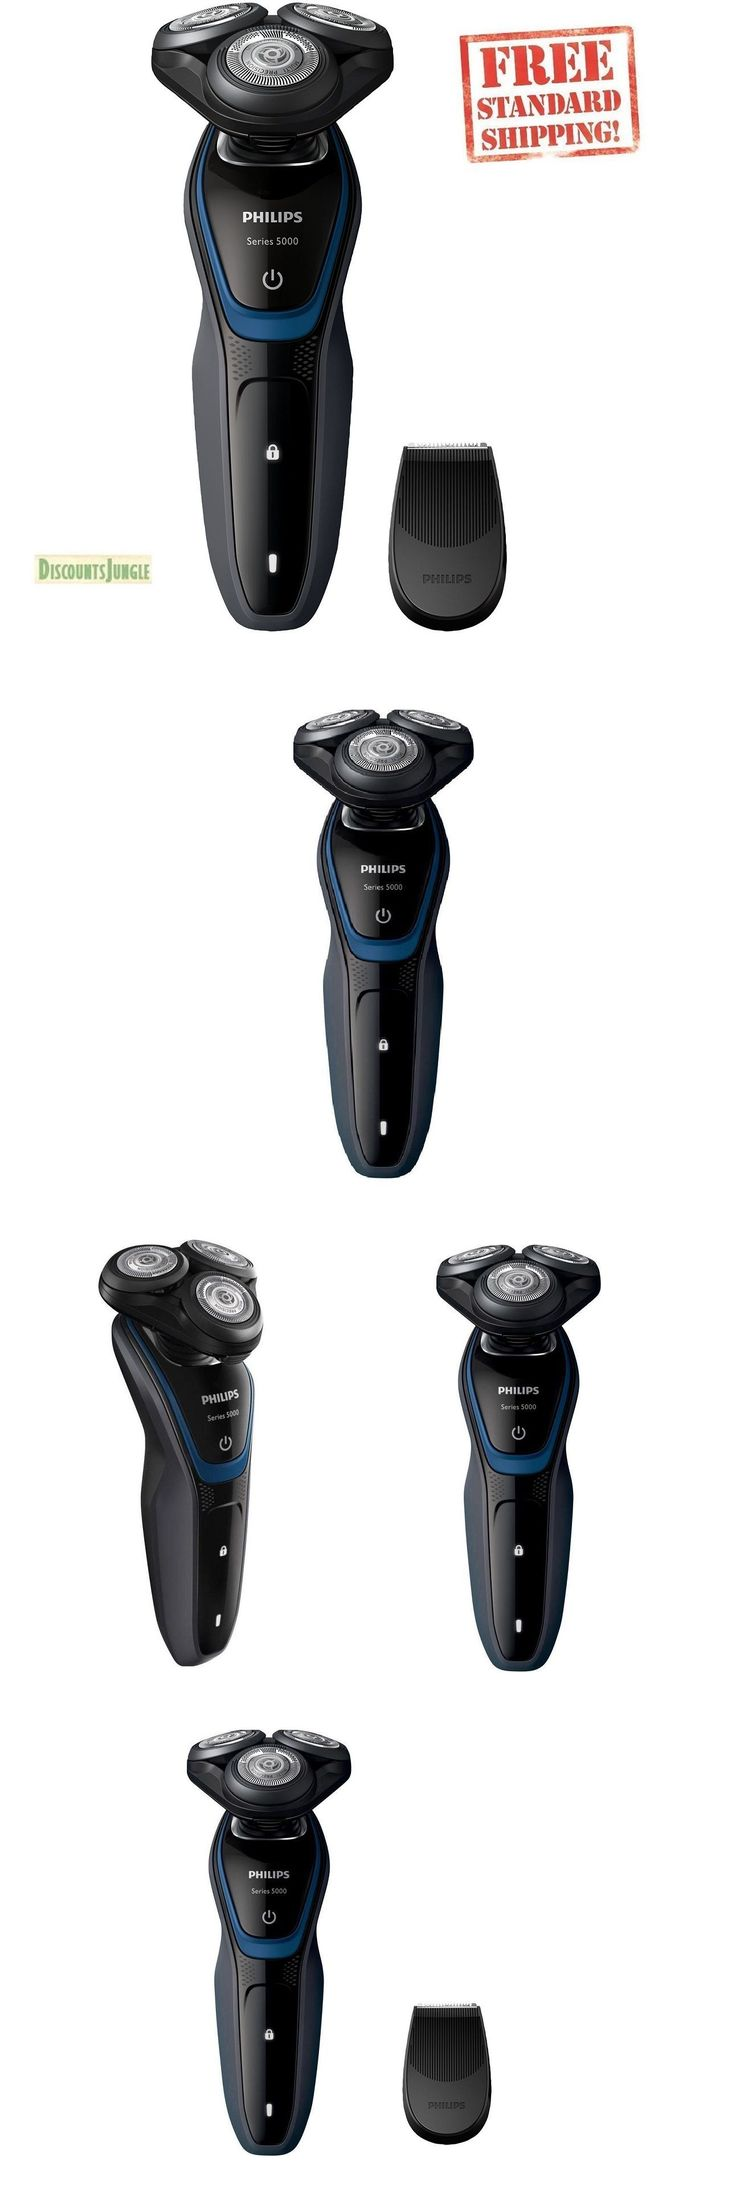 Mens Shavers: Philips Norelco Series 5000 S5100 Dry Electric Men Shaver Cordless S5210 81 5500 -> BUY IT NOW ONLY: $58.99 on eBay!